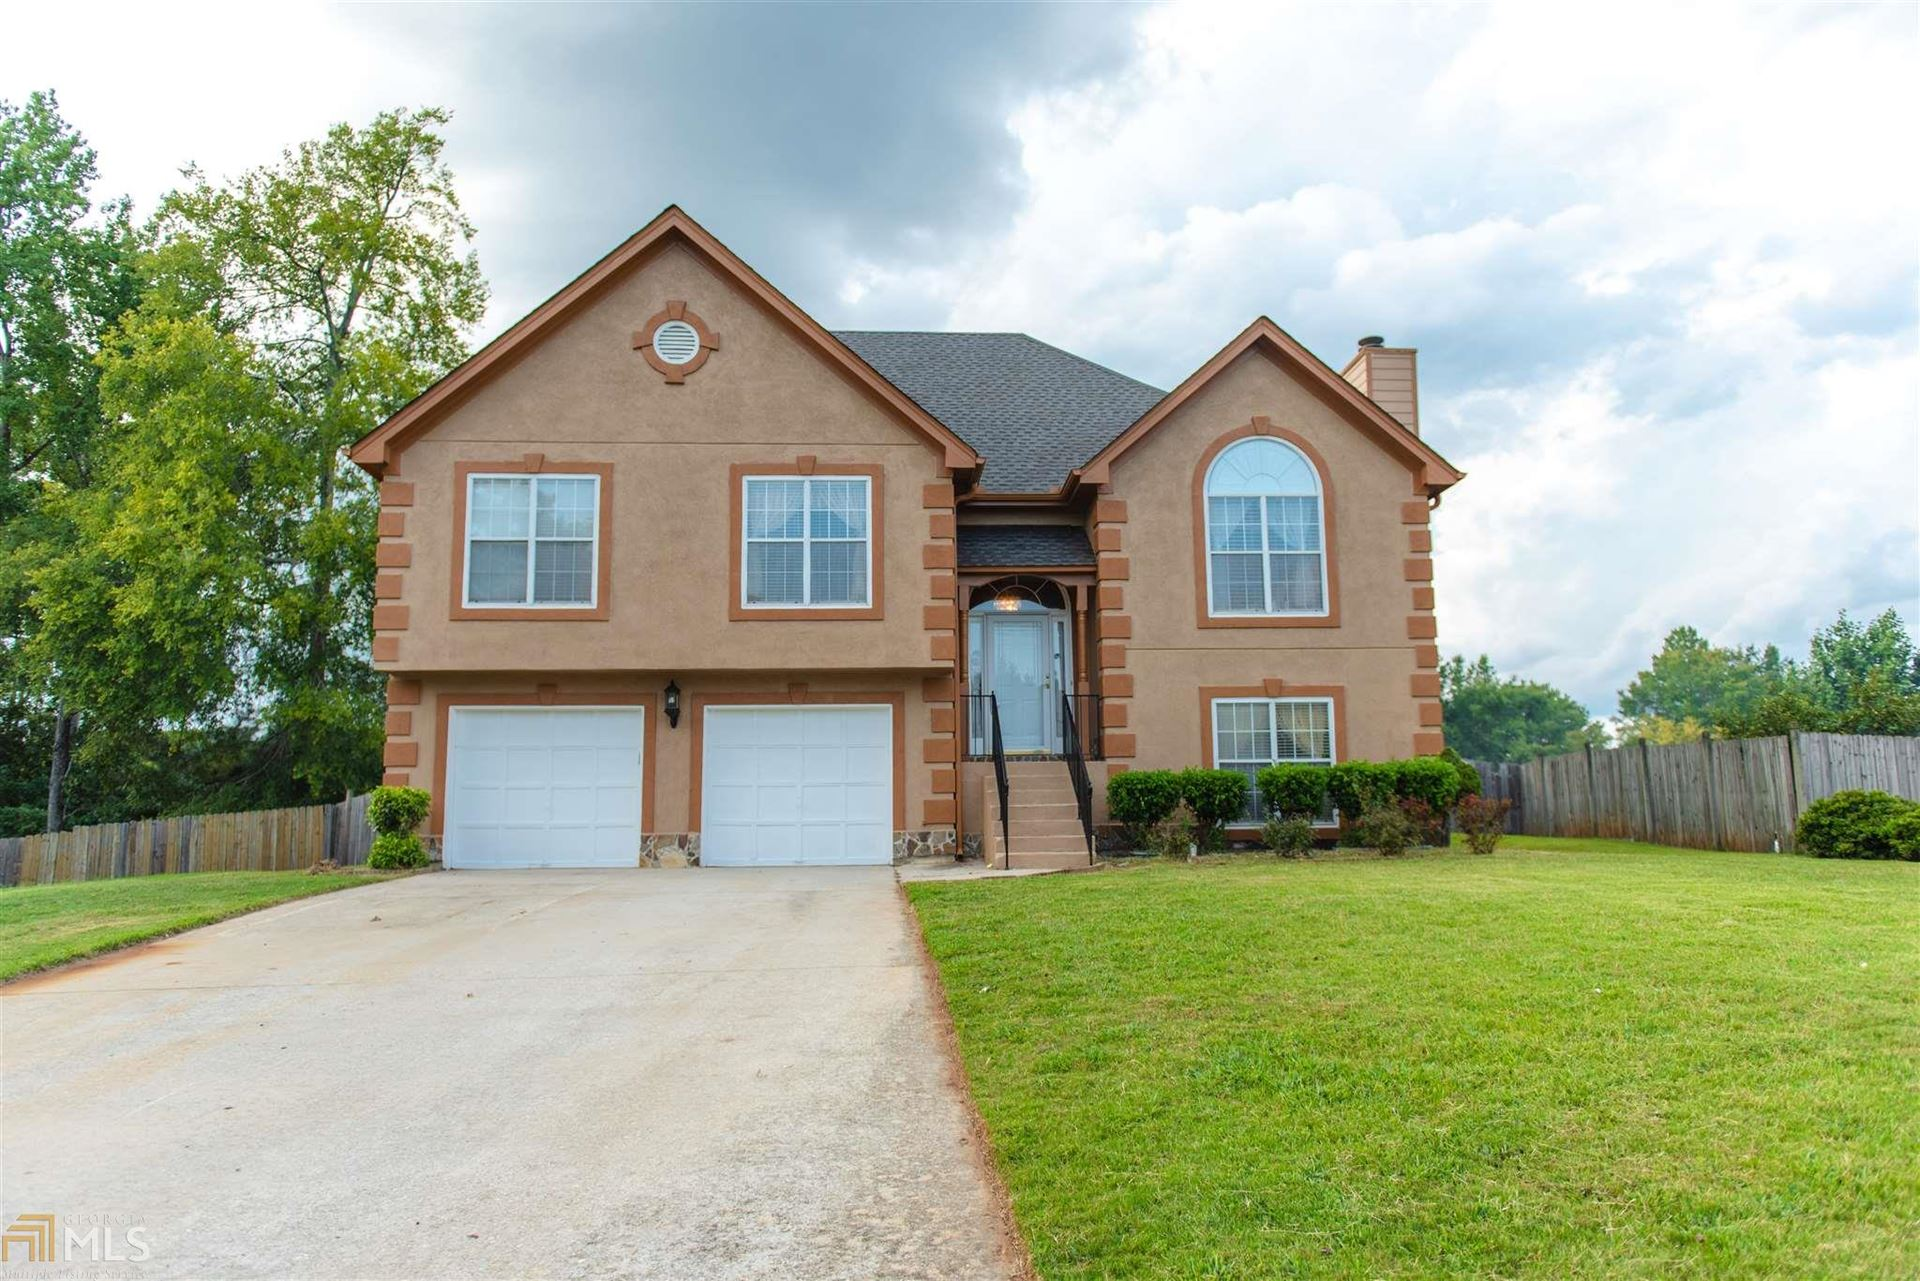 3115 Paces Woods, Lawrenceville, GA 30044 - MLS#: 8848708